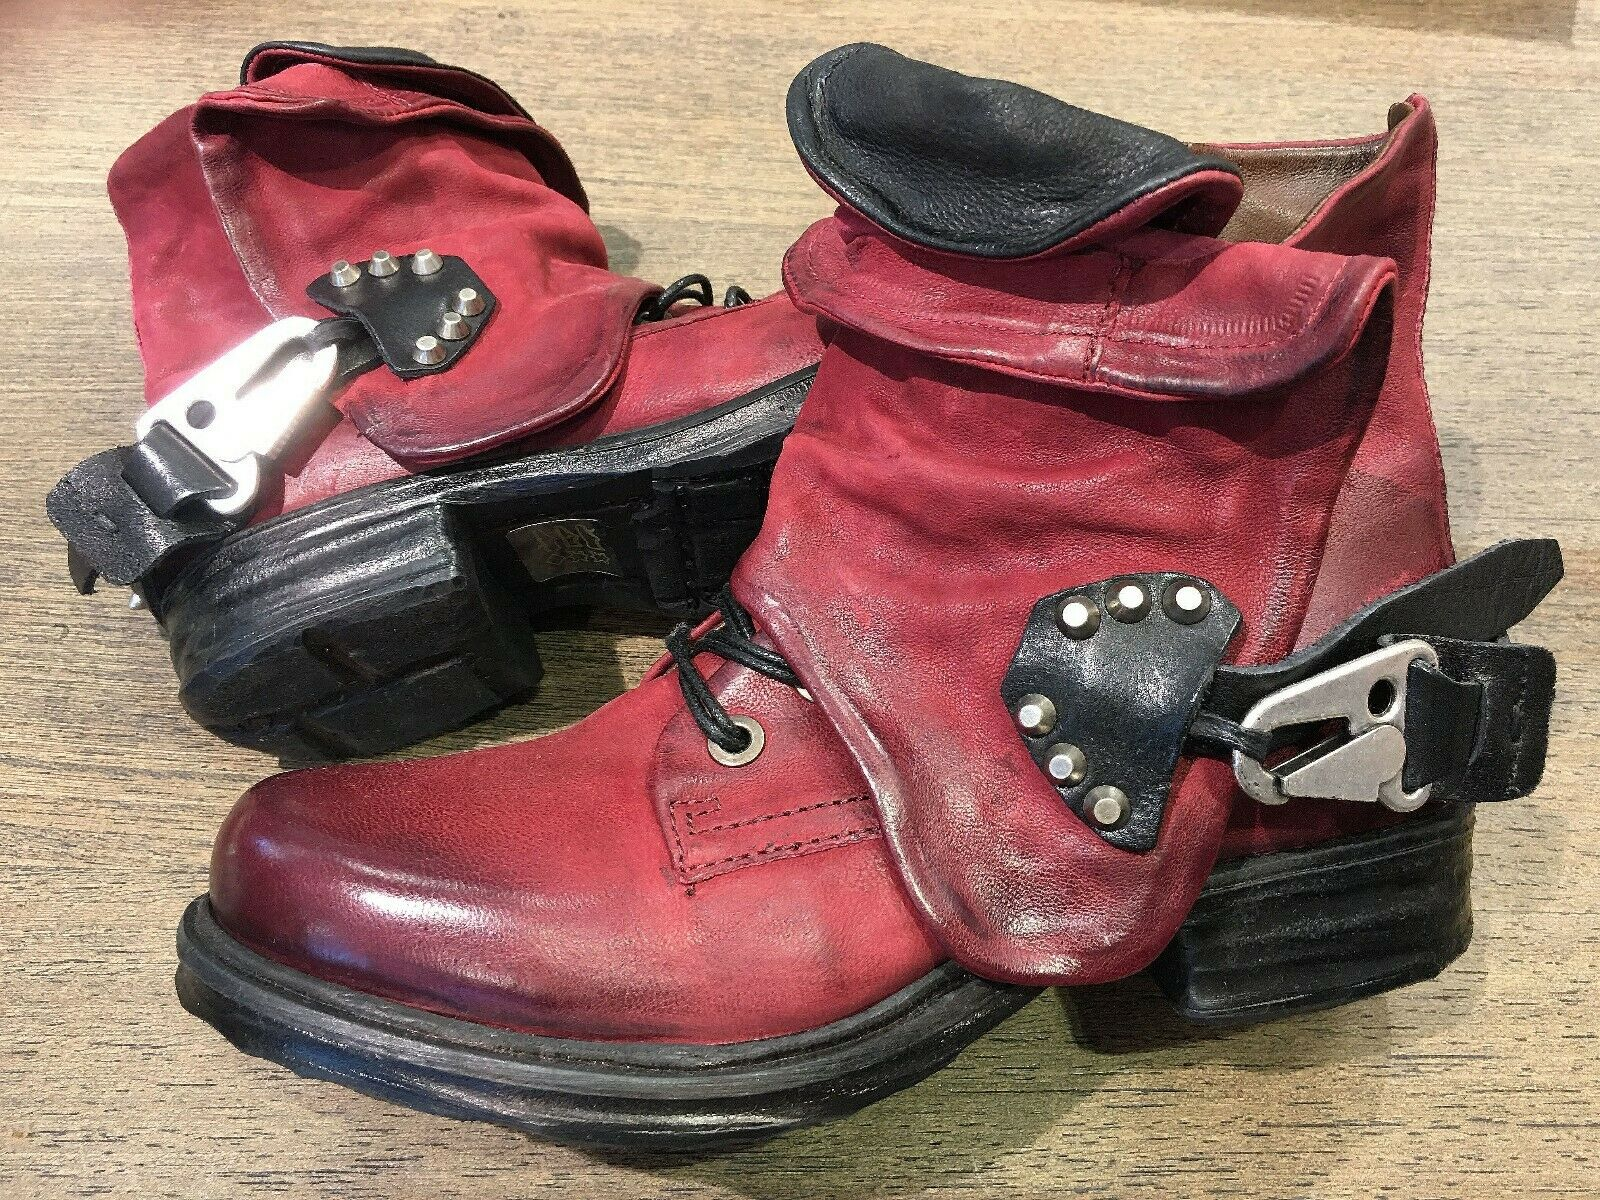 Stiefel Airstep AS98 A.S.98 Stiefel 41 40 39 38 37 Gr. Rot